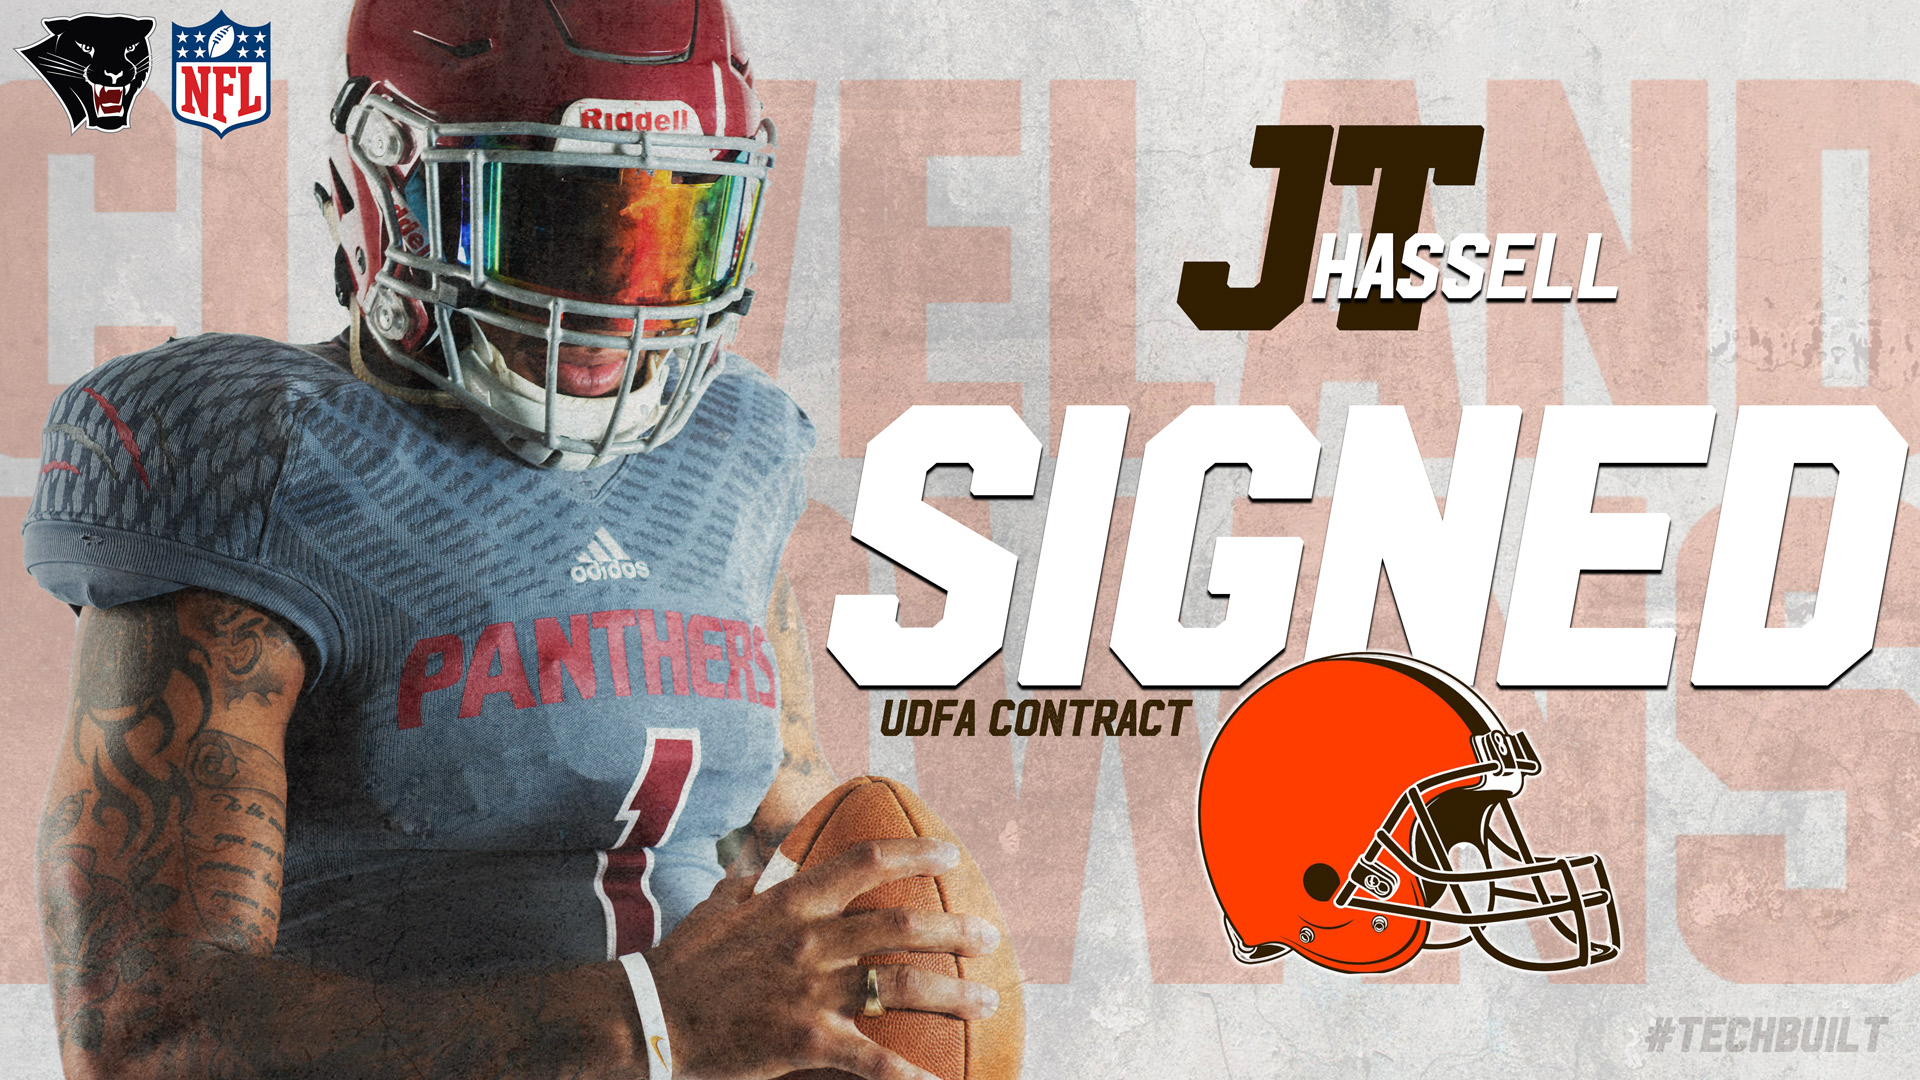 J T Hassell Signs With Cleveland Browns Florida Tech Panthers